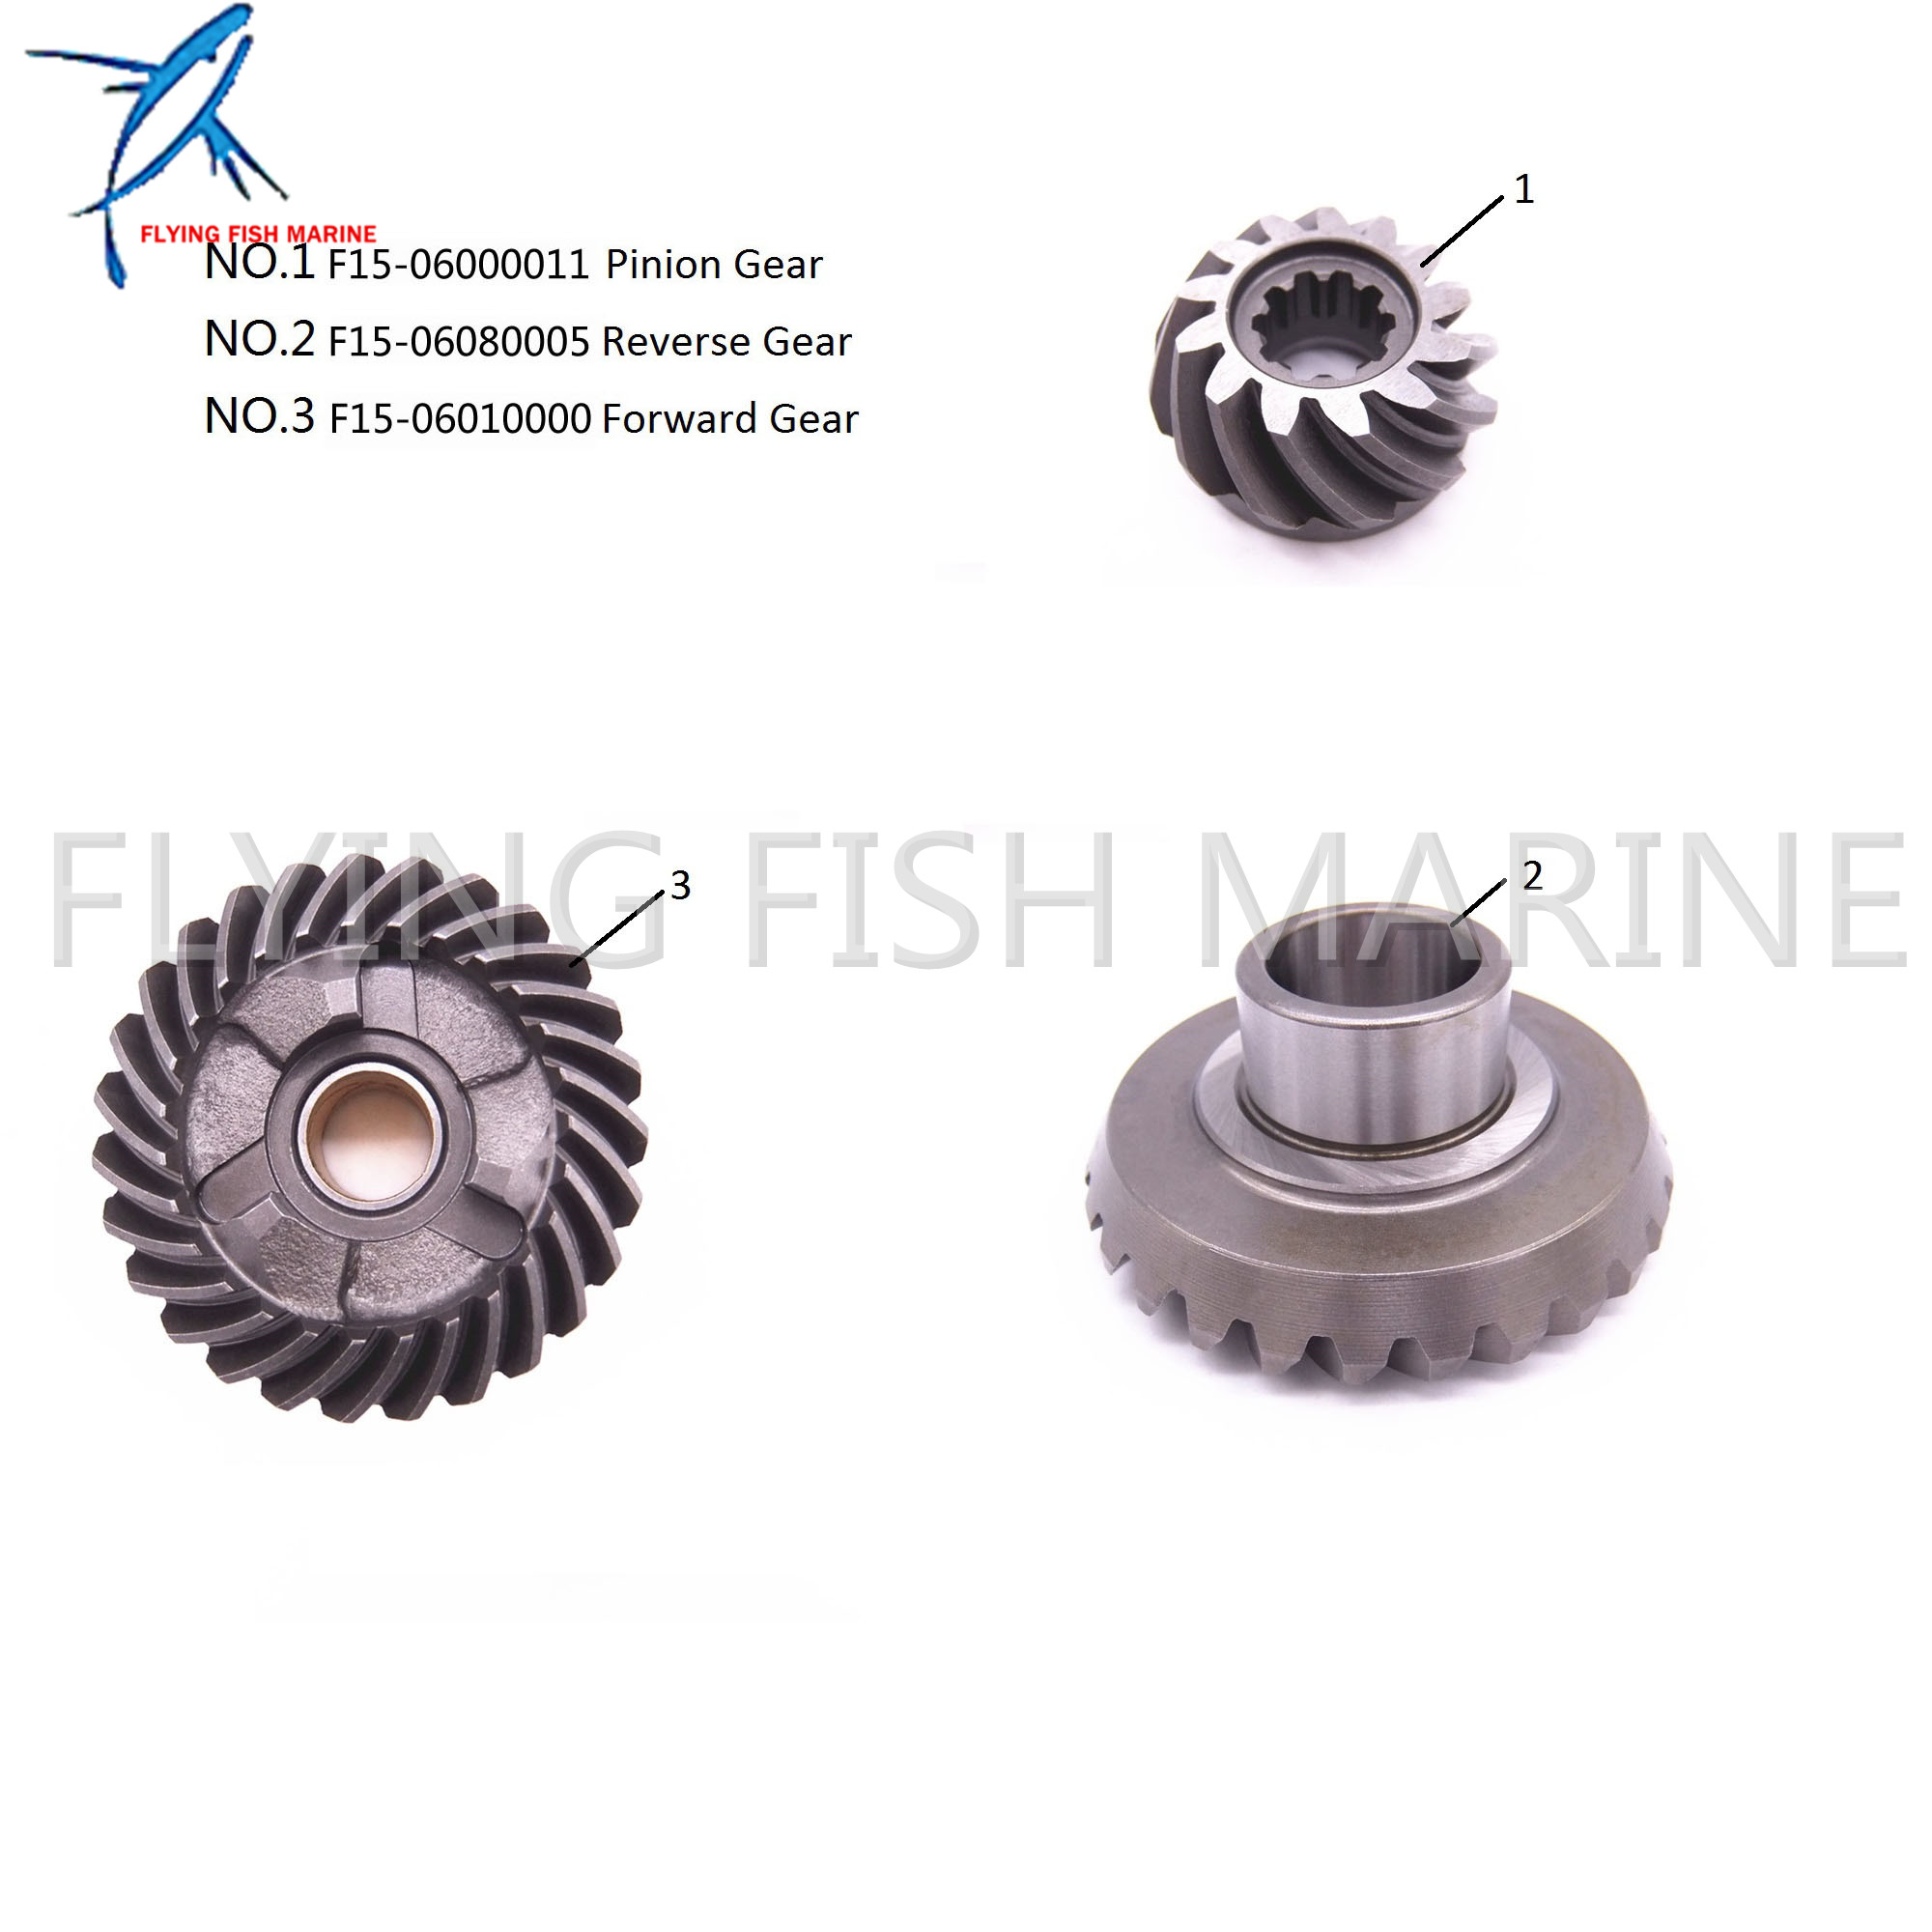 Boat Motor Gear Kit for Mikatsu Parsun HDX F15A F20A F9.9 F15 Lowering Casing F20 04000100 F20 04000003 F20 04000004-in Boat Engine from Automobiles & Motorcycles    1